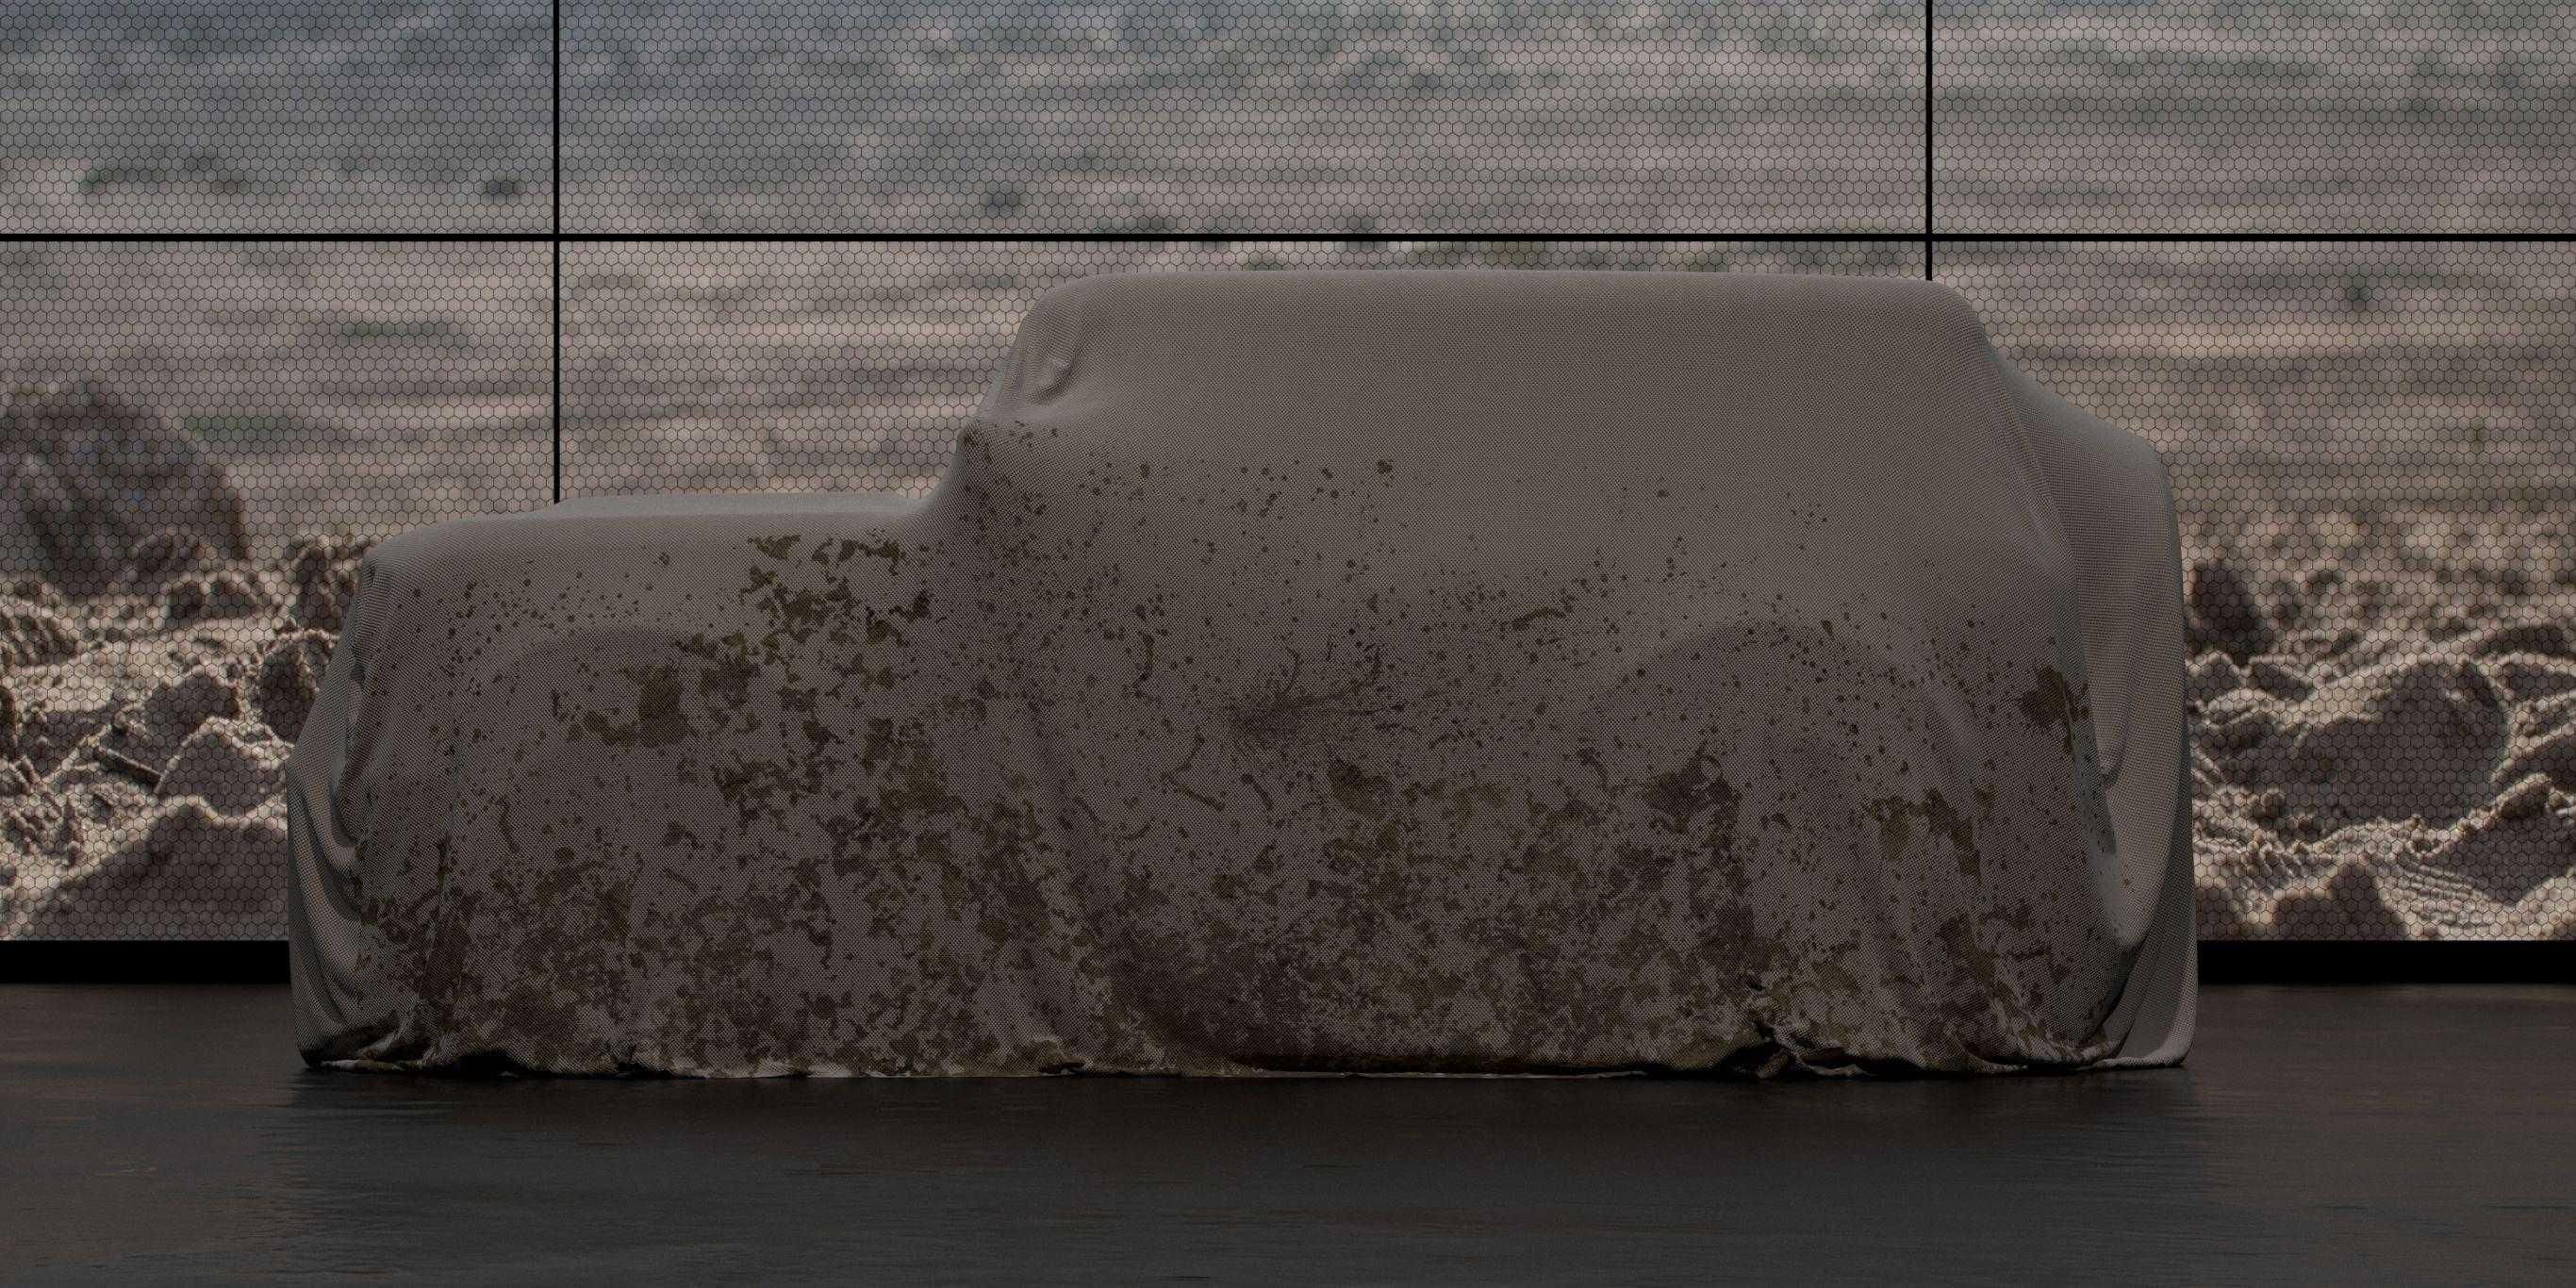 Ford & Lincoln The New 2020 Bronco Is Coming image